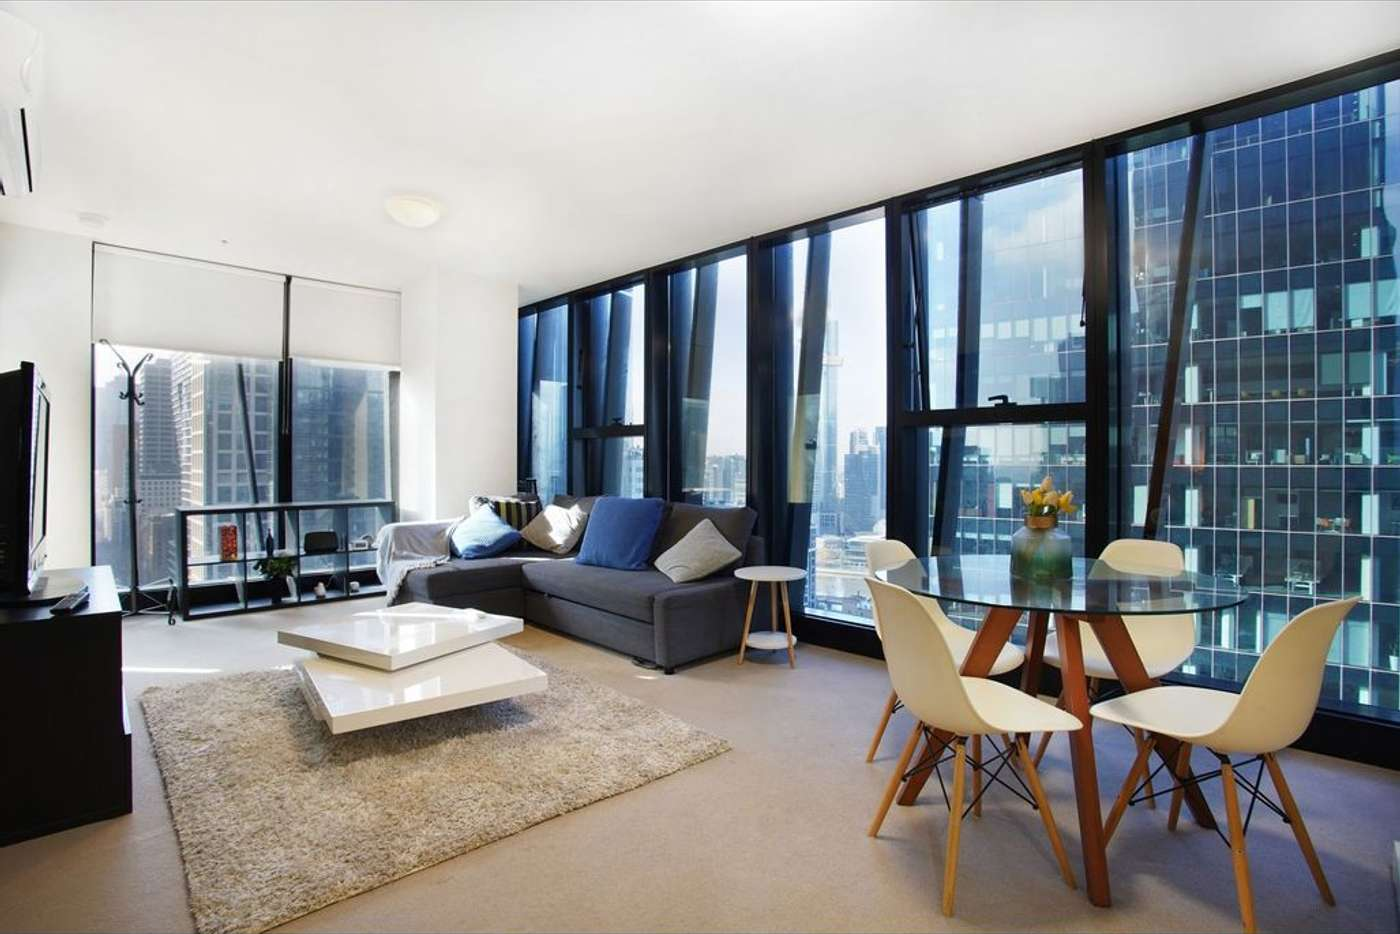 Main view of Homely apartment listing, 2402/568 Collins Street, Melbourne VIC 3000